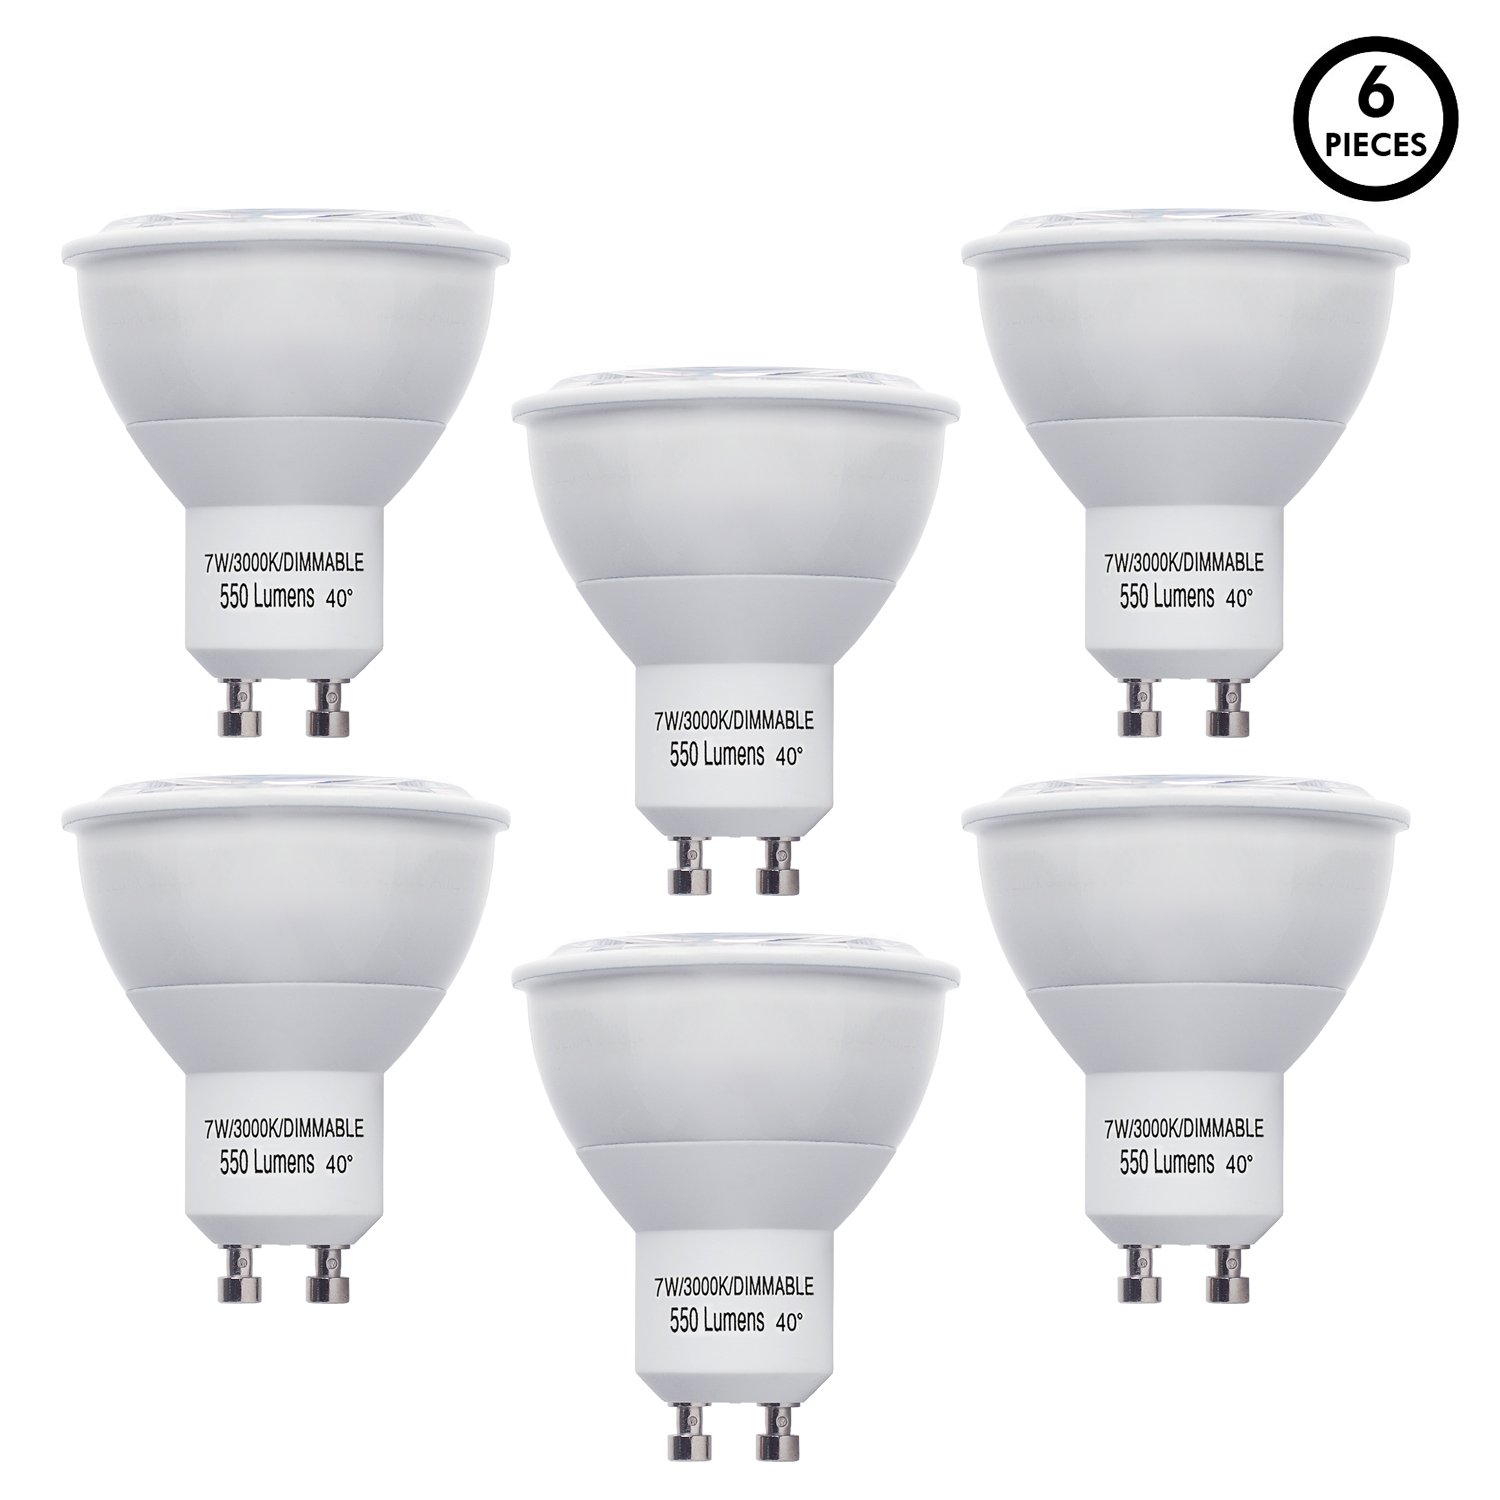 LB10561 LED GU10 MR16 40° 50W Equivalent, Dimmable 7 Watt, 3000K Soft White Light Bulbs, 550 Lumens, UL-Listed, Energy Star Certified, (6-Pack)